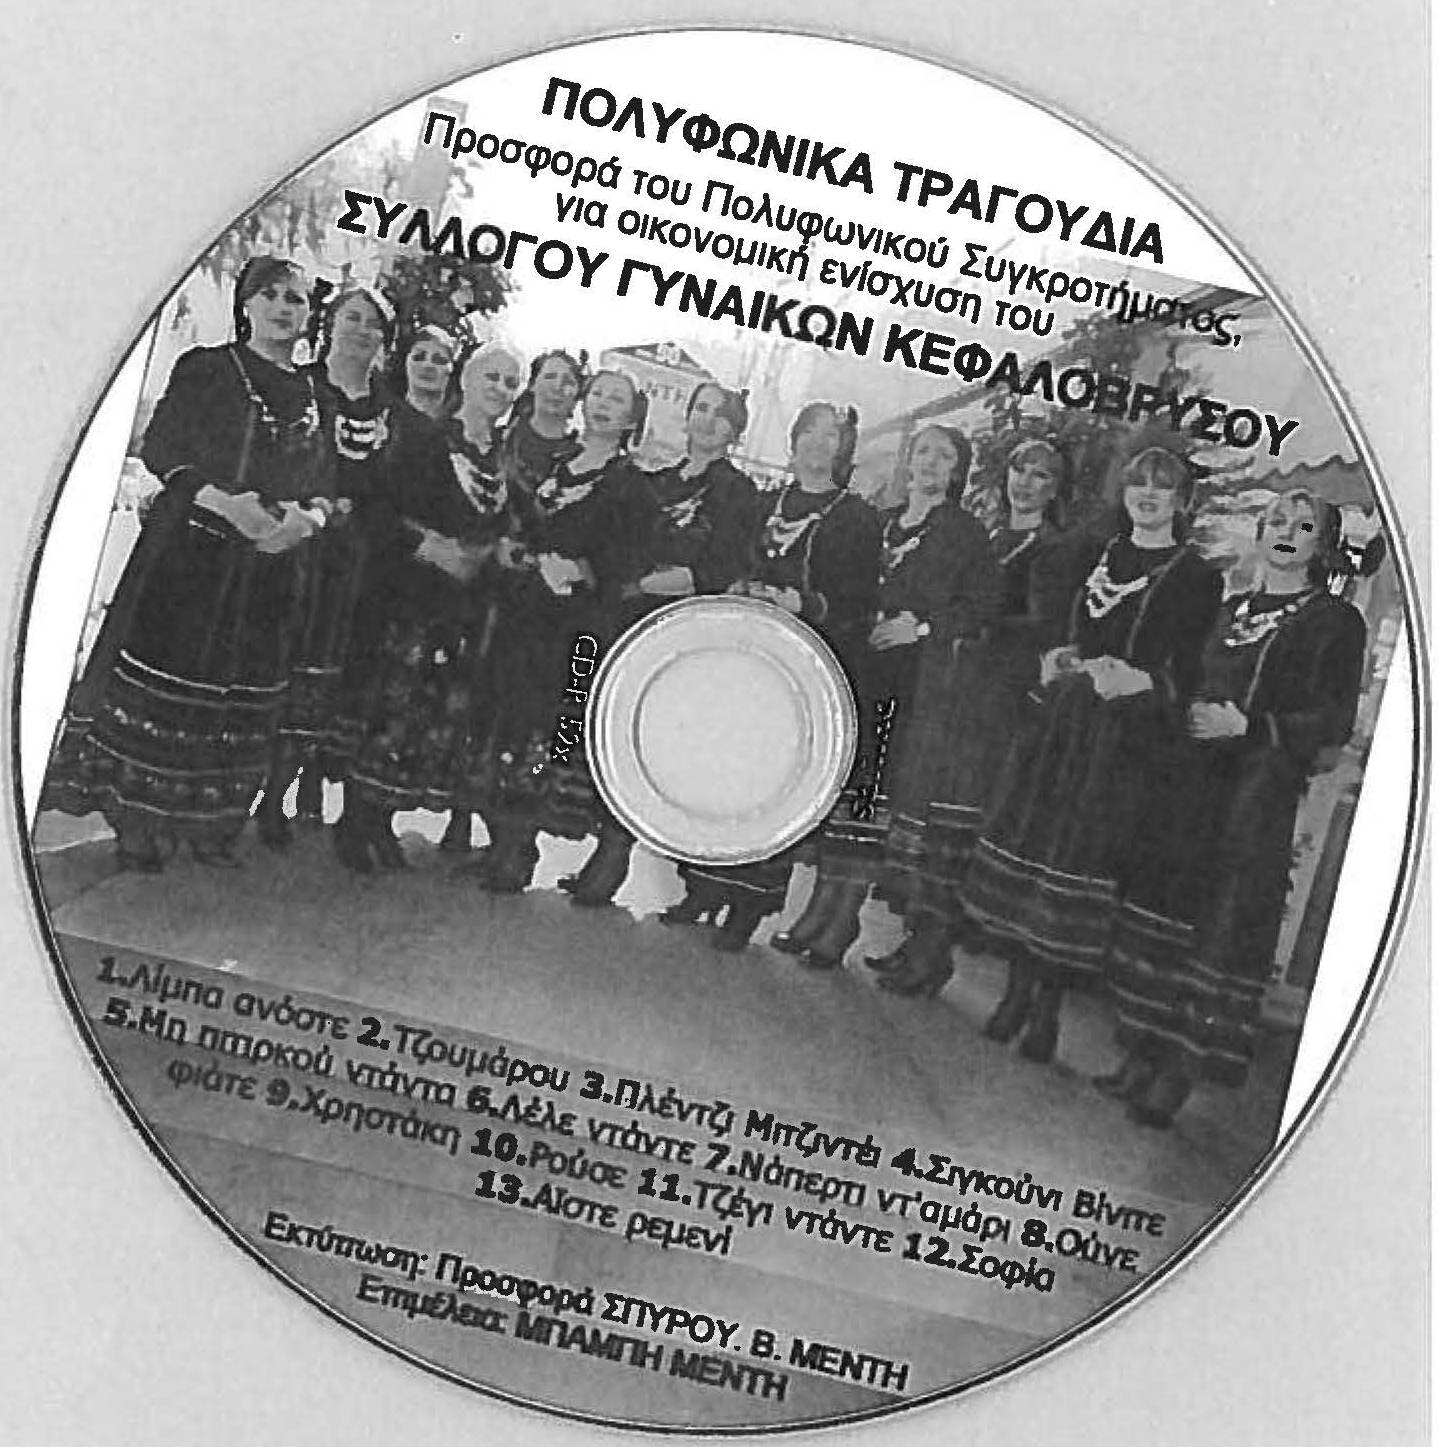 POLYPHONIC SONGS OF THE ASSOCIATION OF WOMEN OF KEFALOVRISI